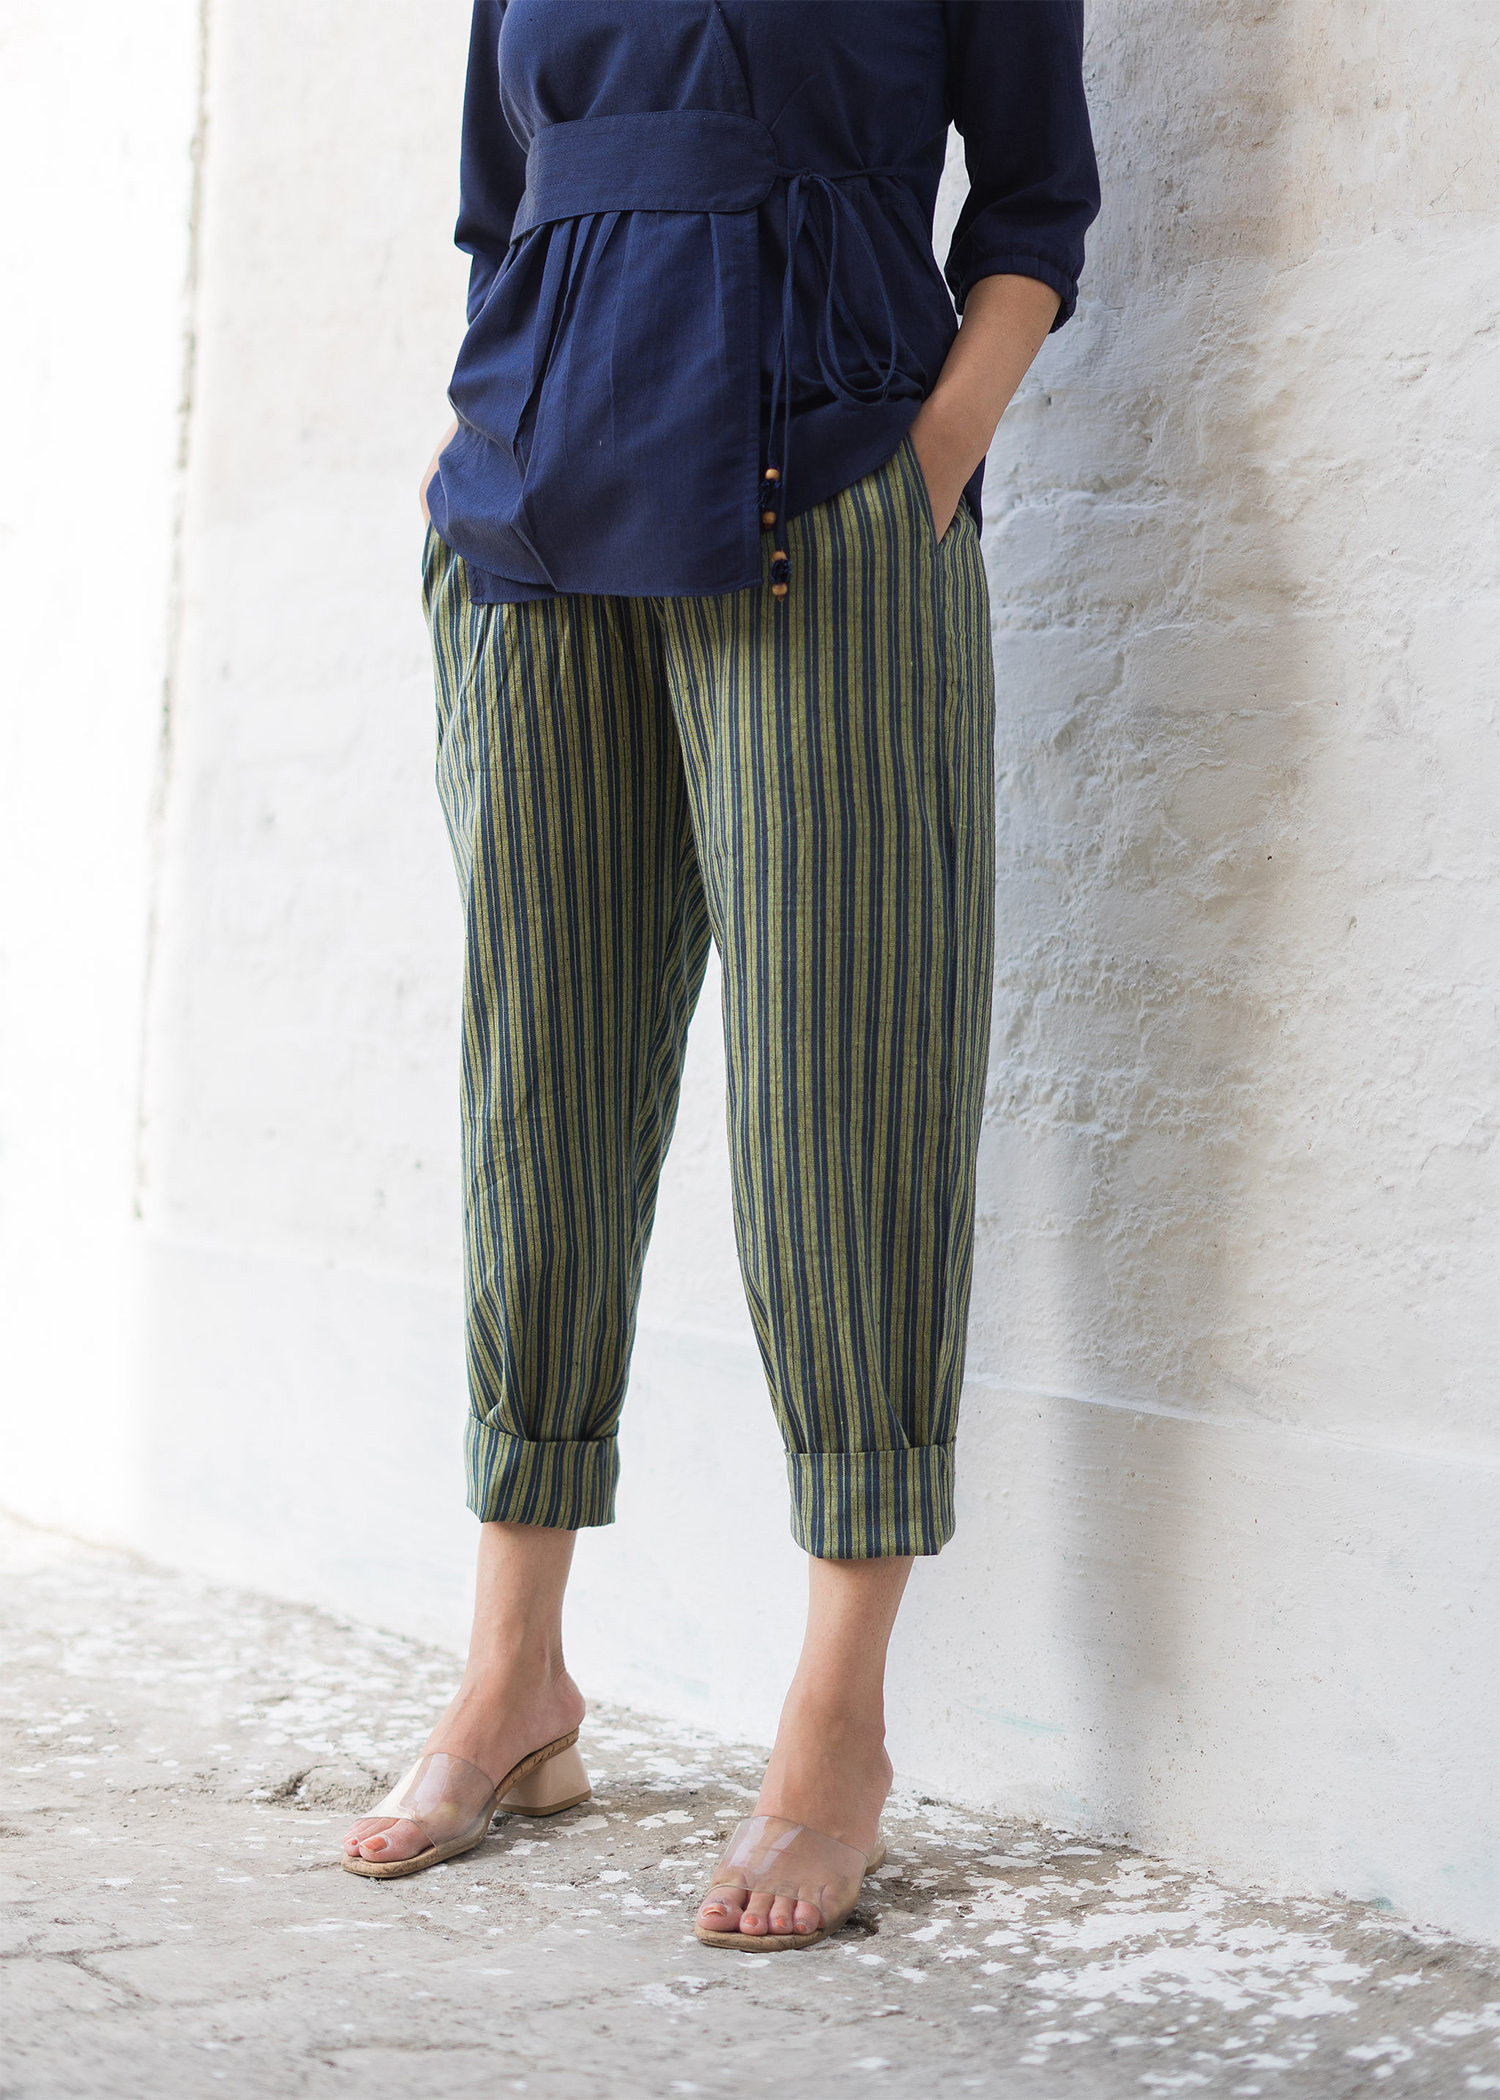 catalog/Summer Story 2019/stripe pants 1.jpg